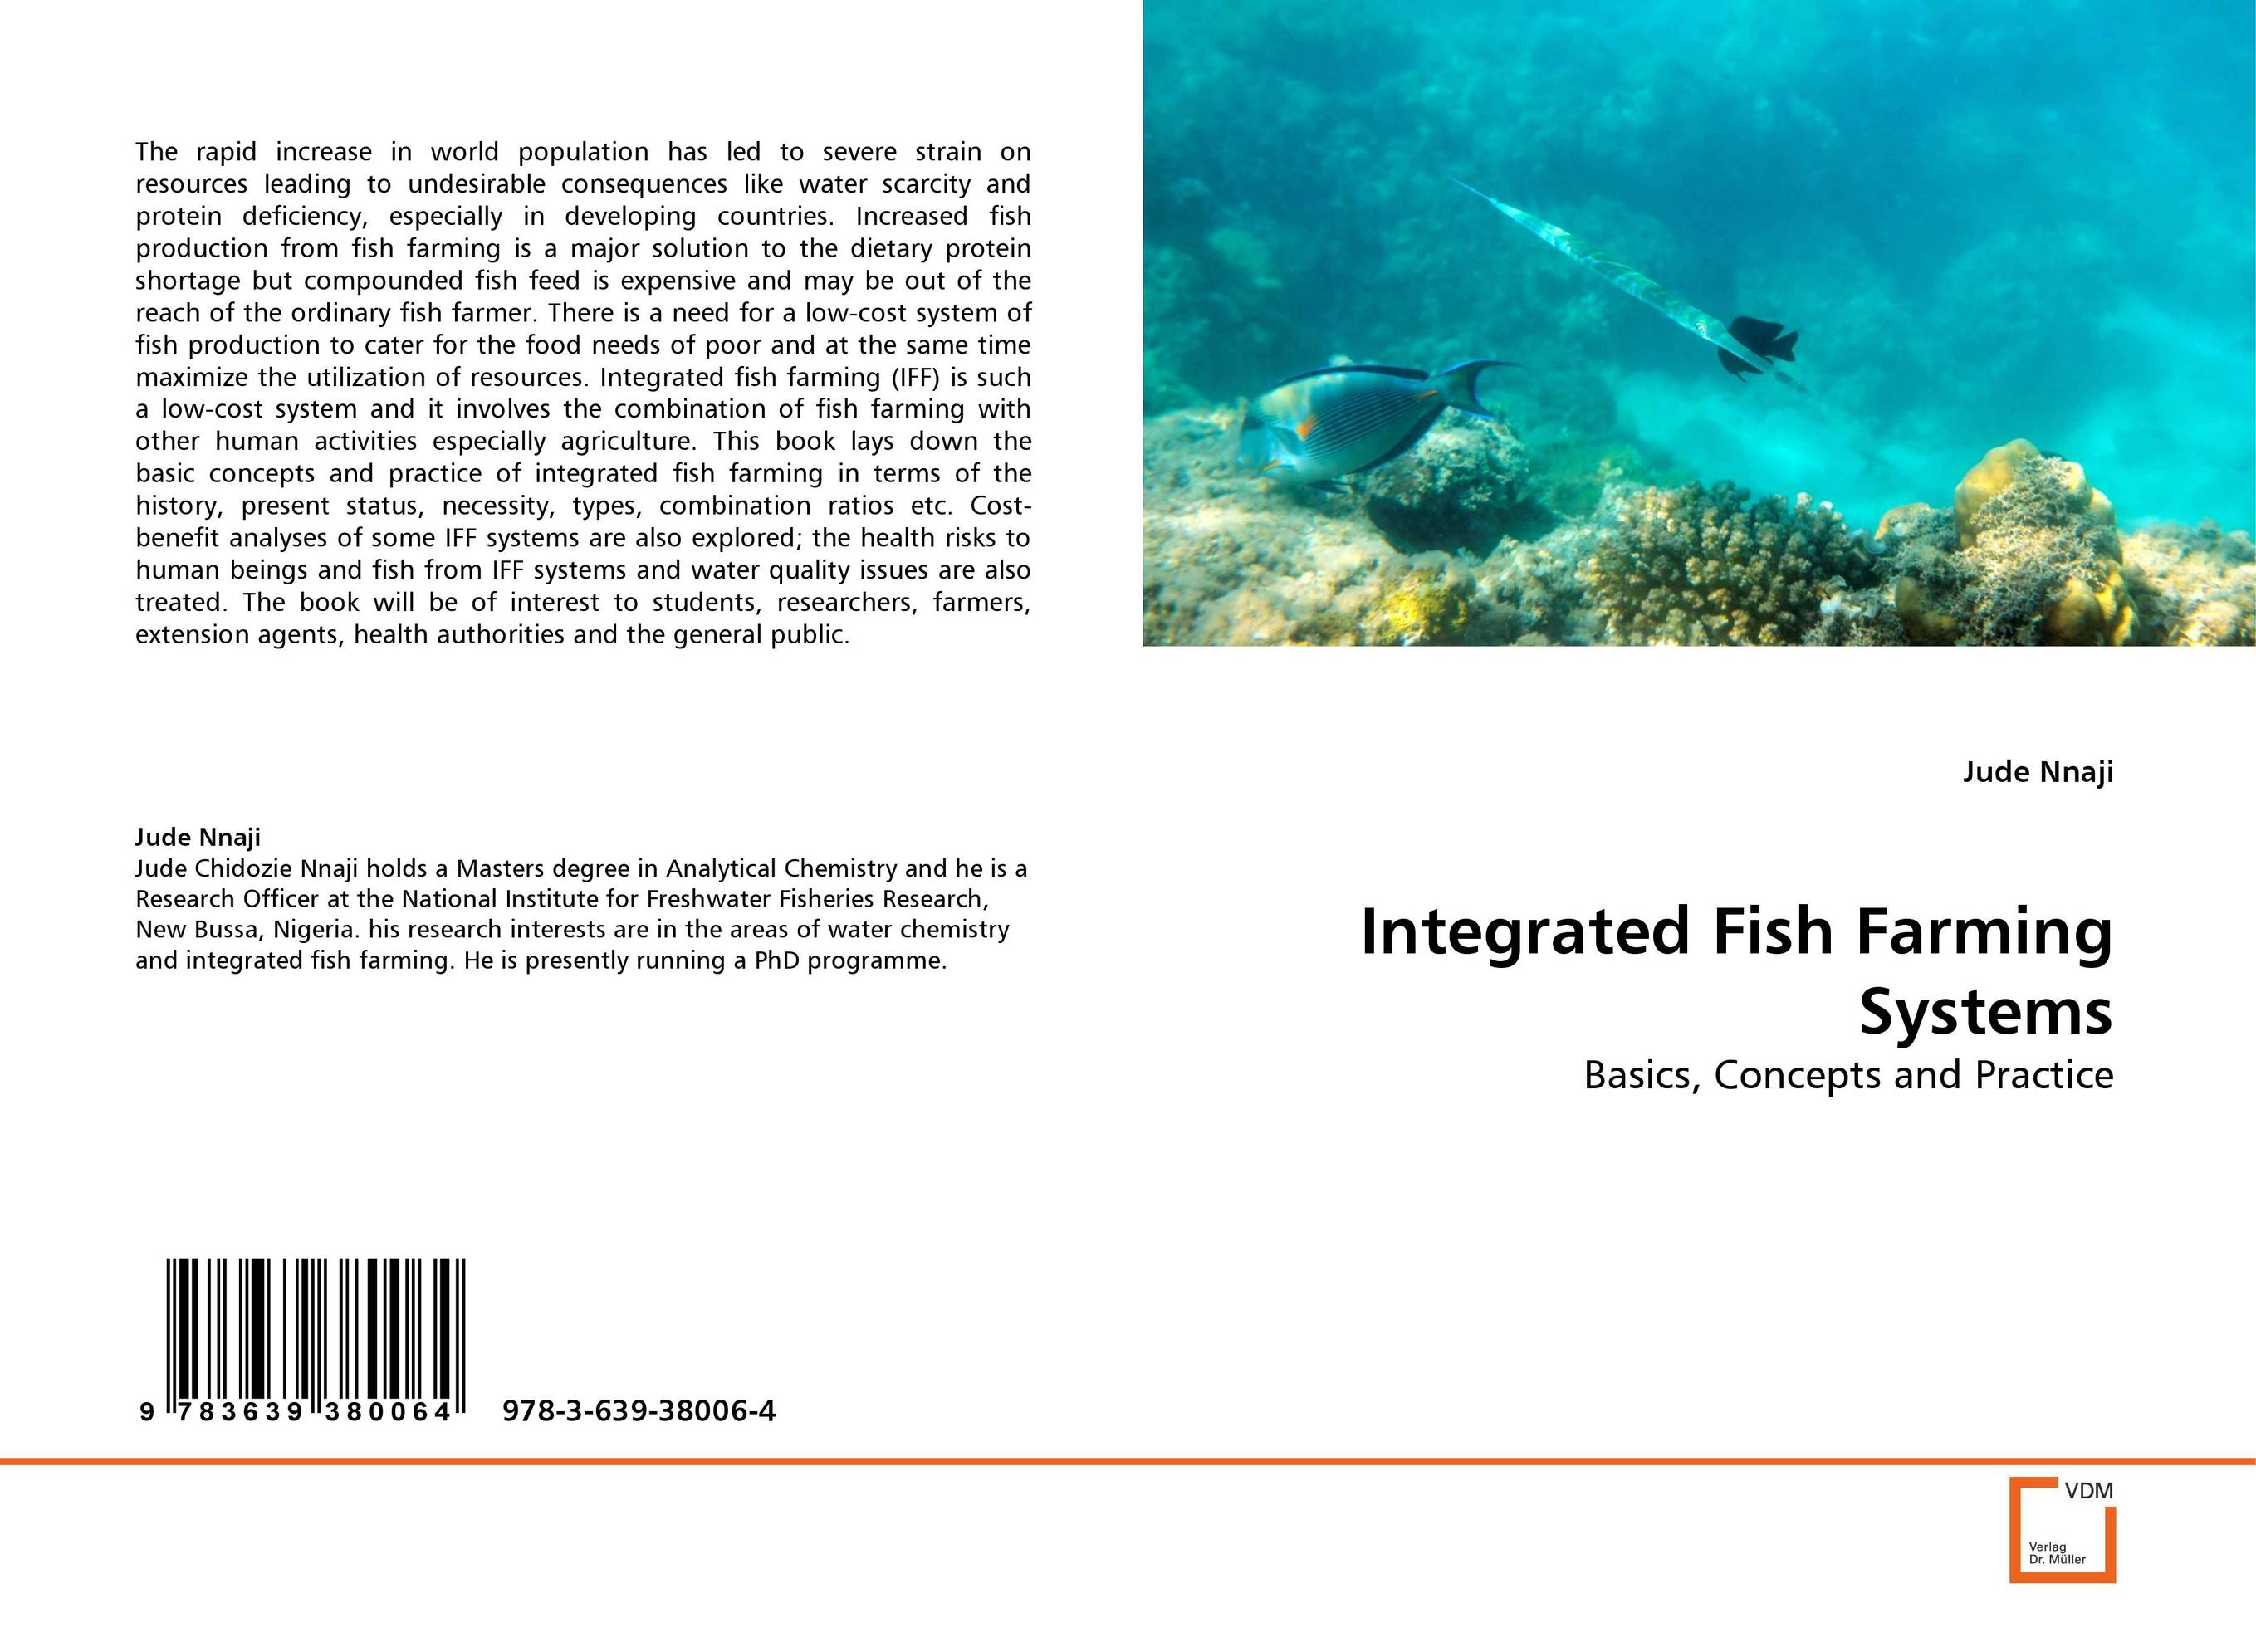 Integrated Fish Farming Systems